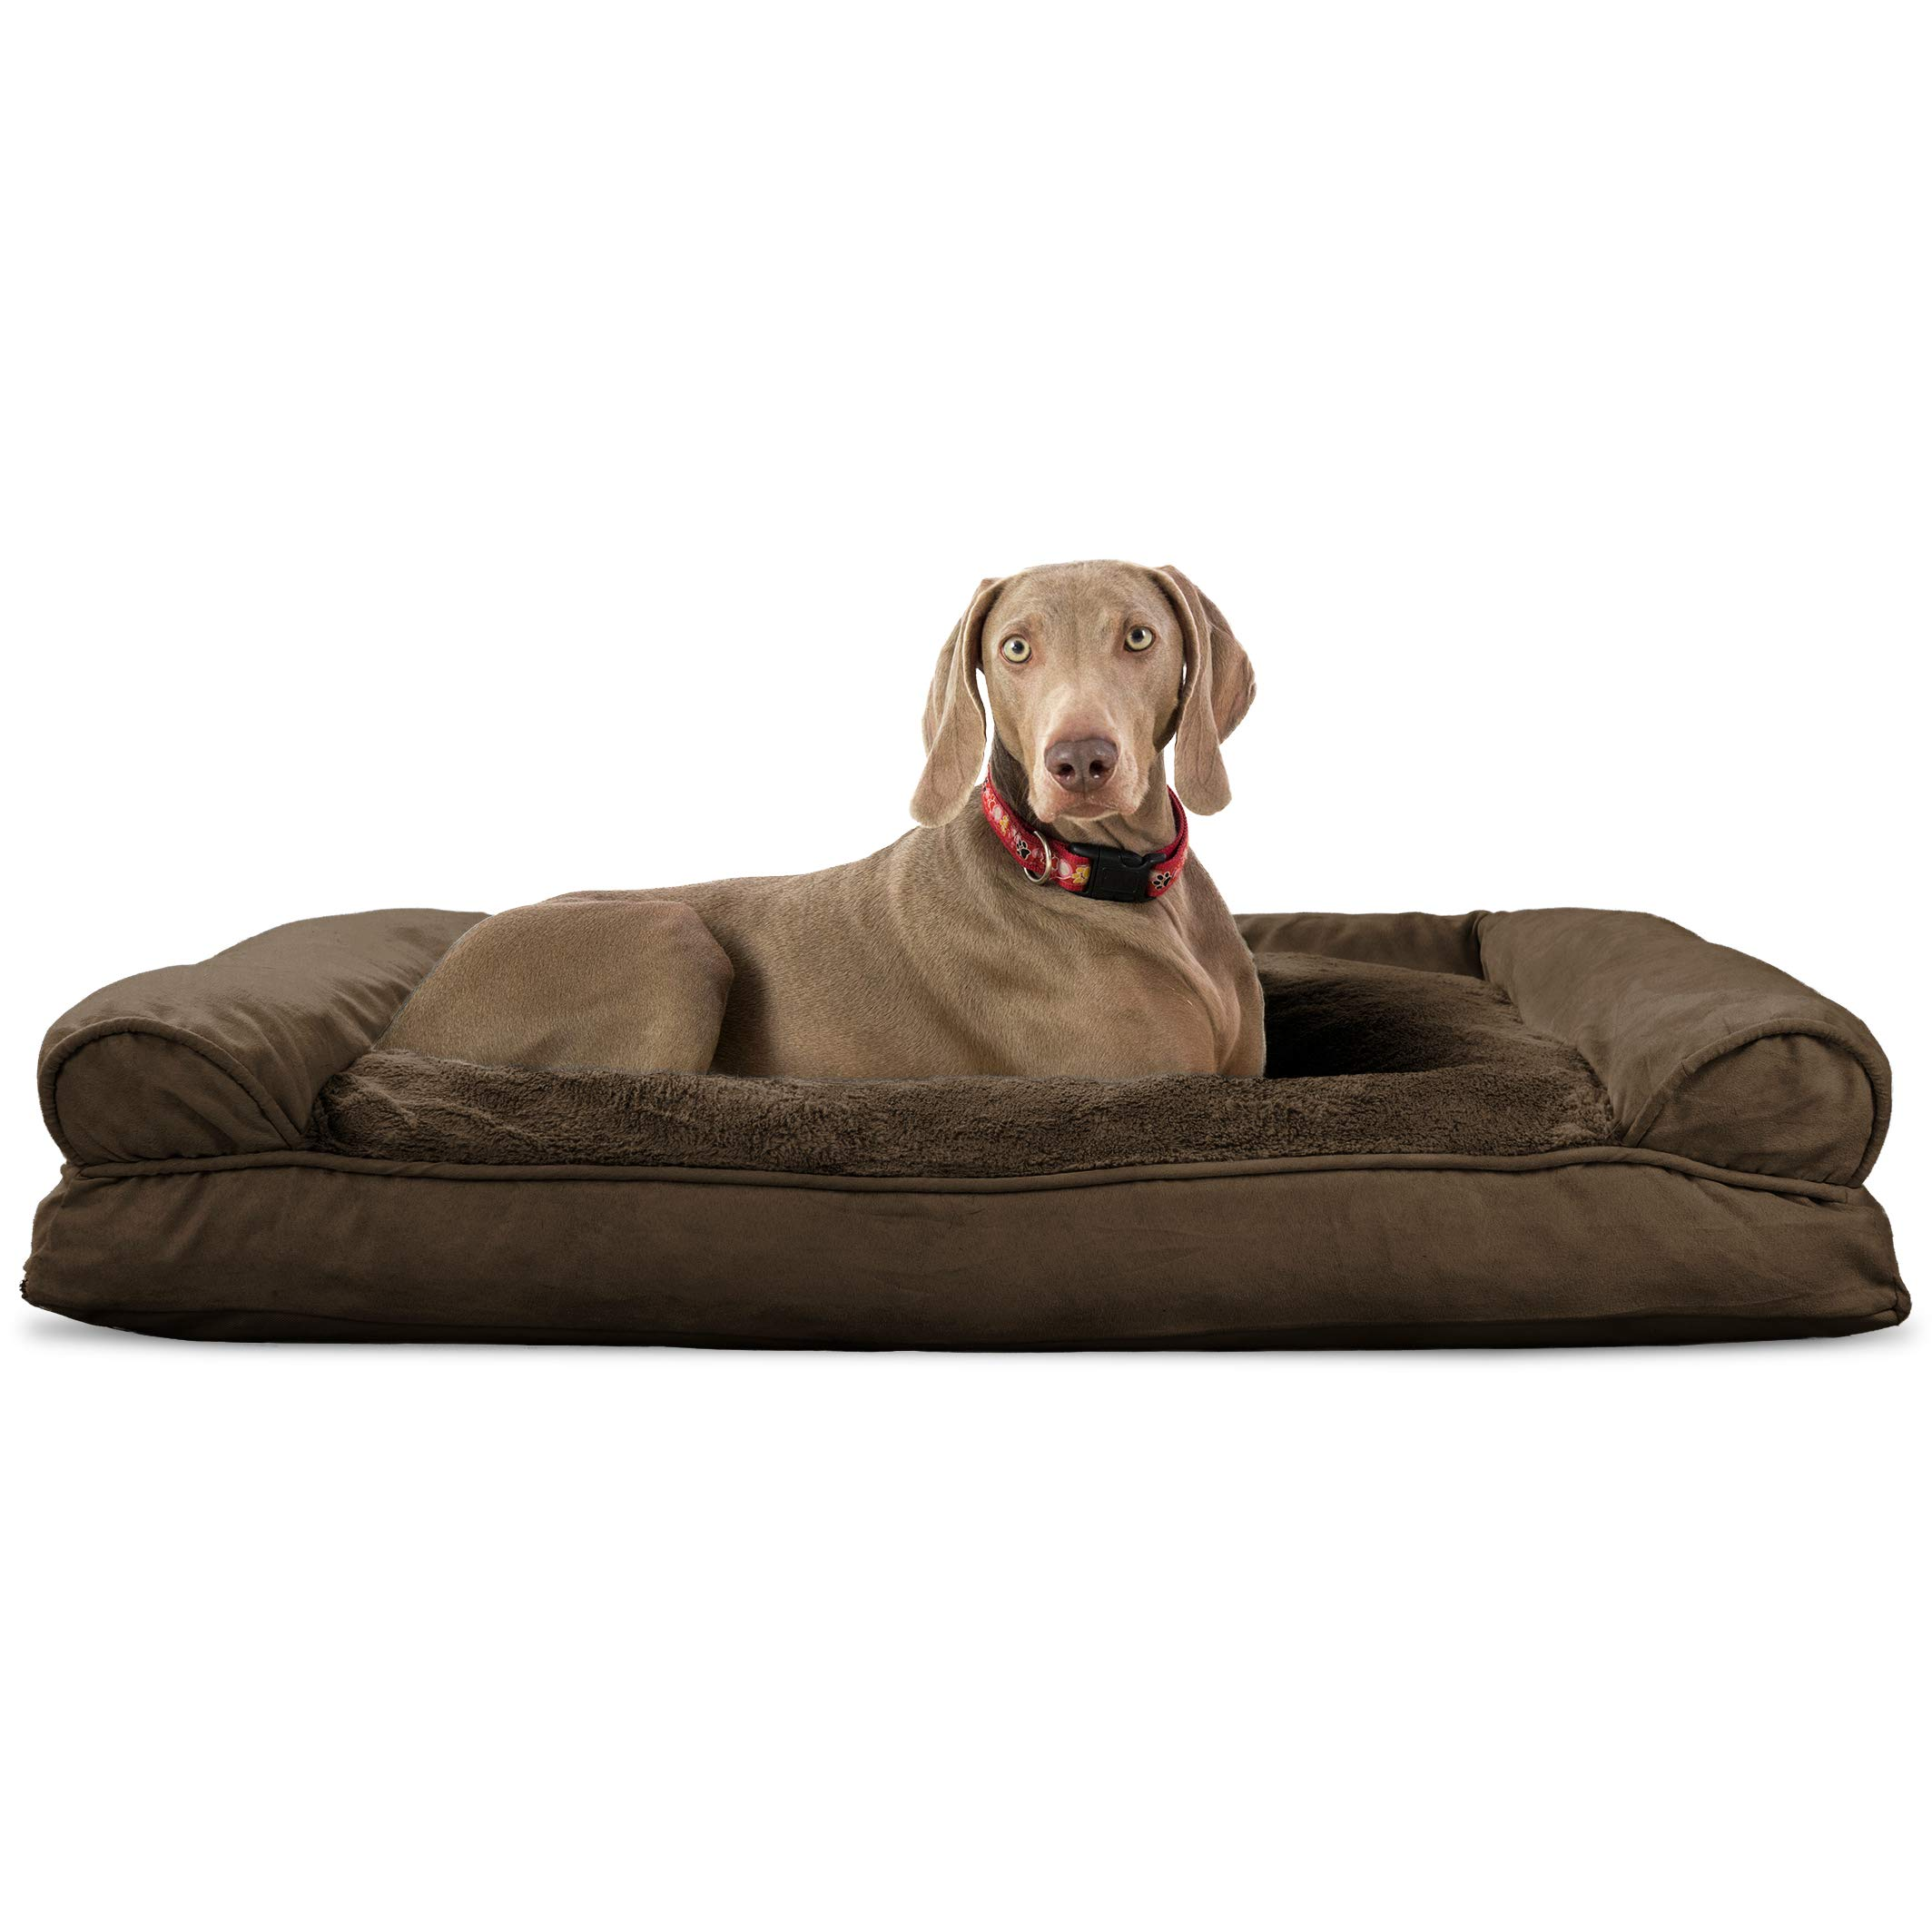 FurHaven Pet Dog Bed | Plush & Suede Pillow Sofa-Style Couch Pet Bed for Dogs & Cats, Espresso, Jumbo